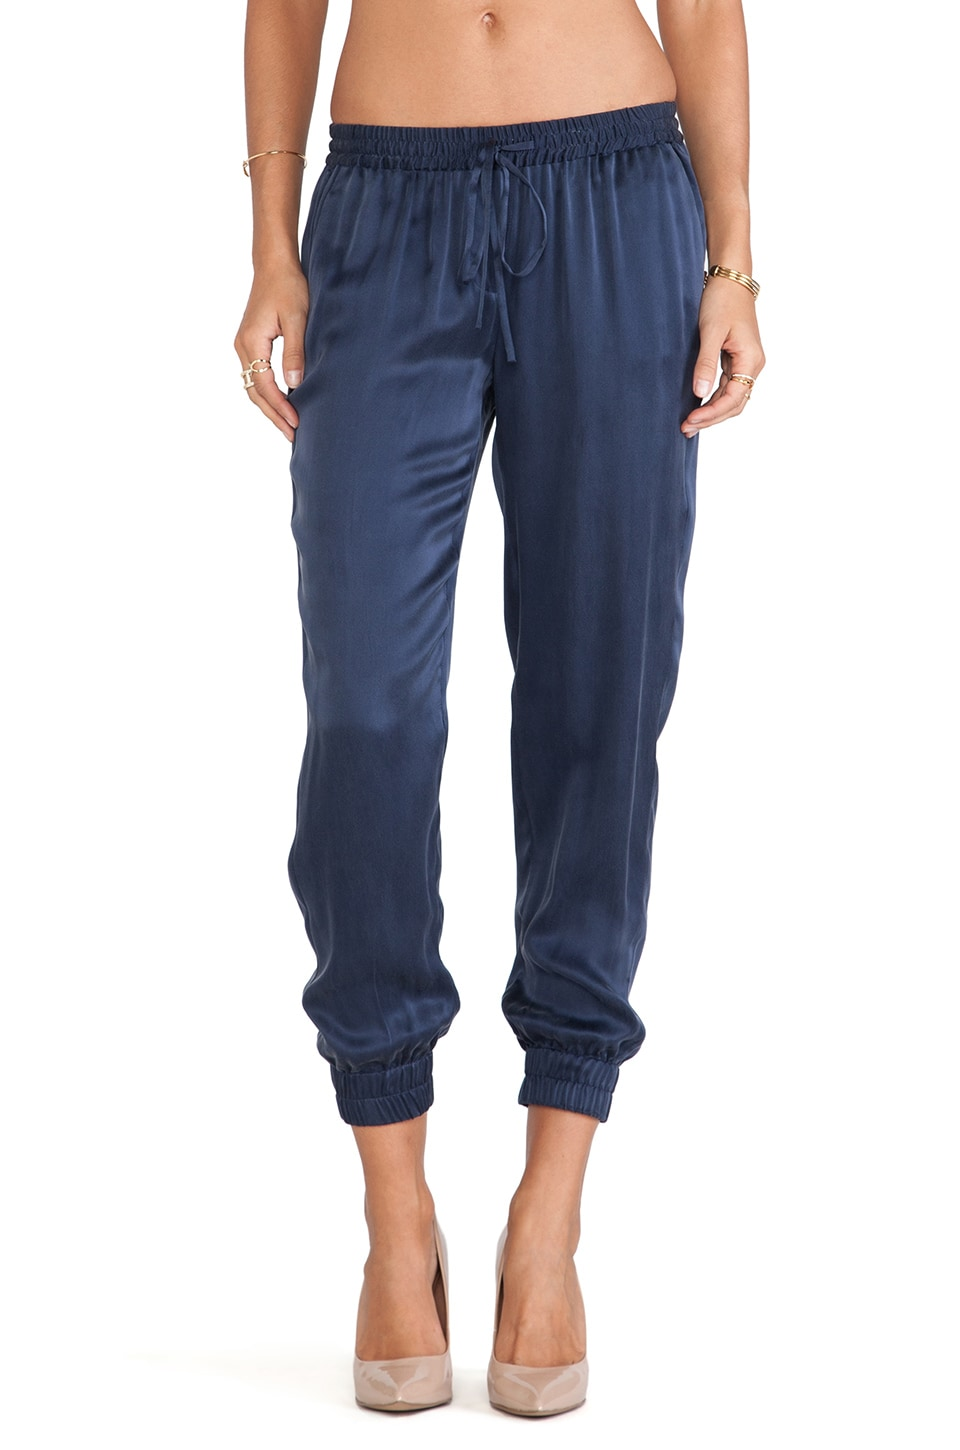 PAIGE Jadyn Pant in Dark Ink Blue